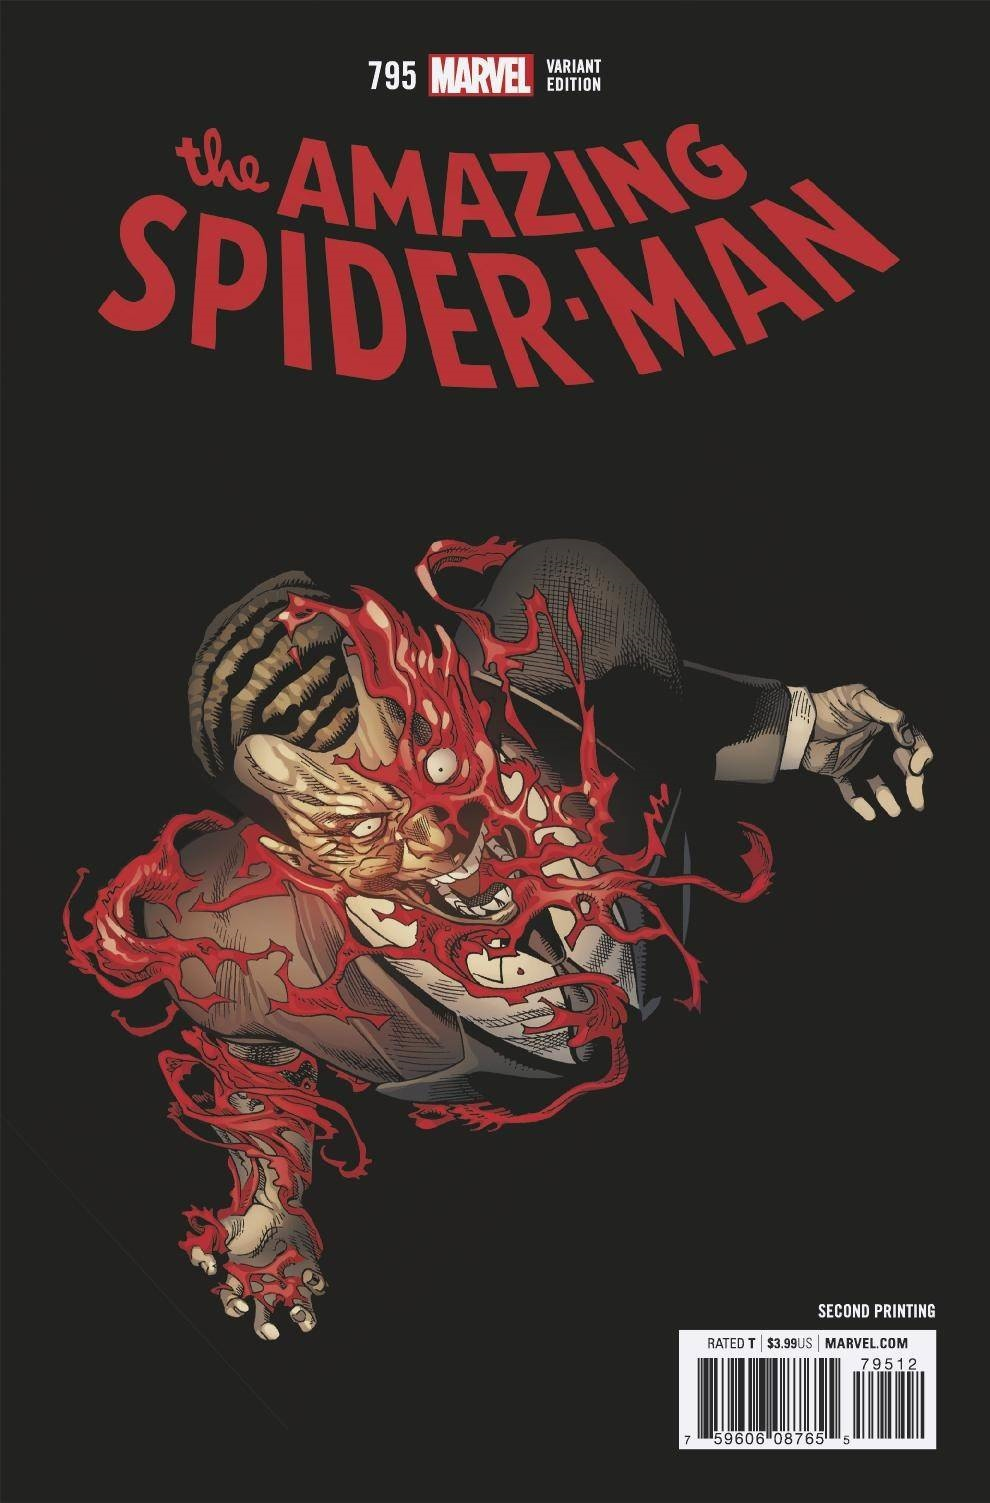 Amazing Spider-Man #795 Second Printing [Marvel Comic]